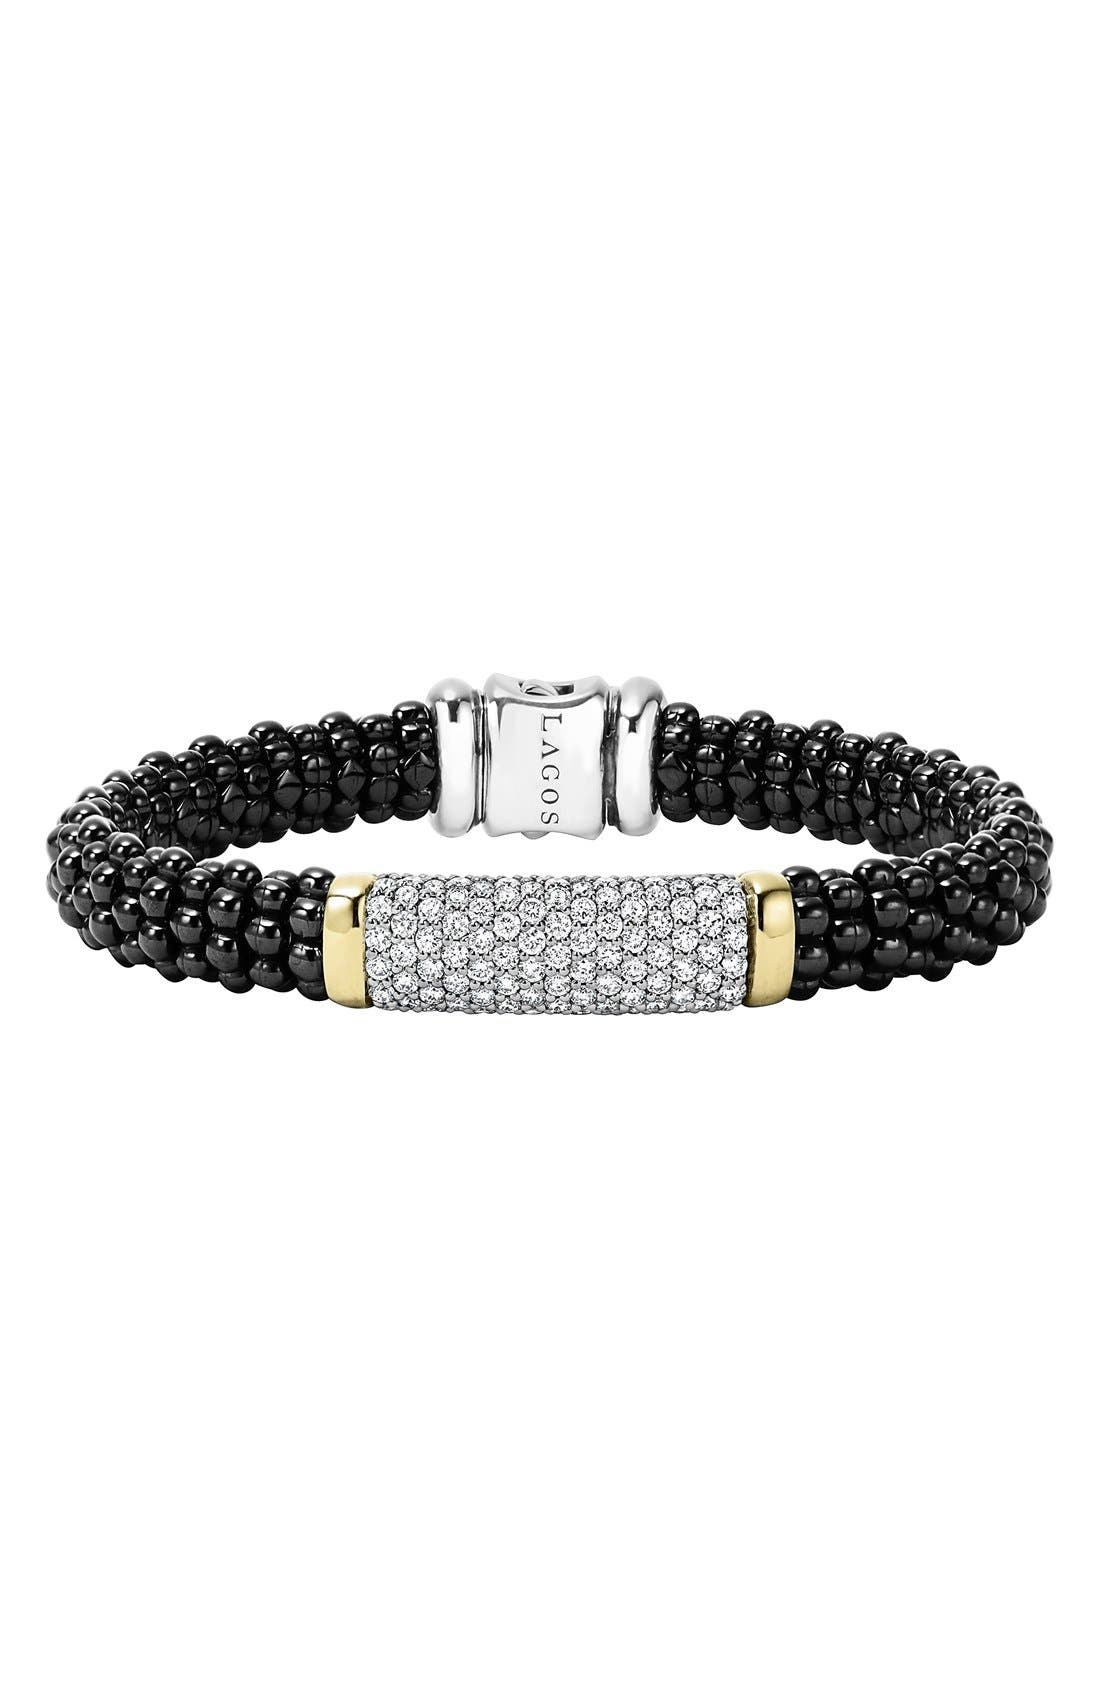 LAGOS Black Caviar Diamond Rope Bracelet